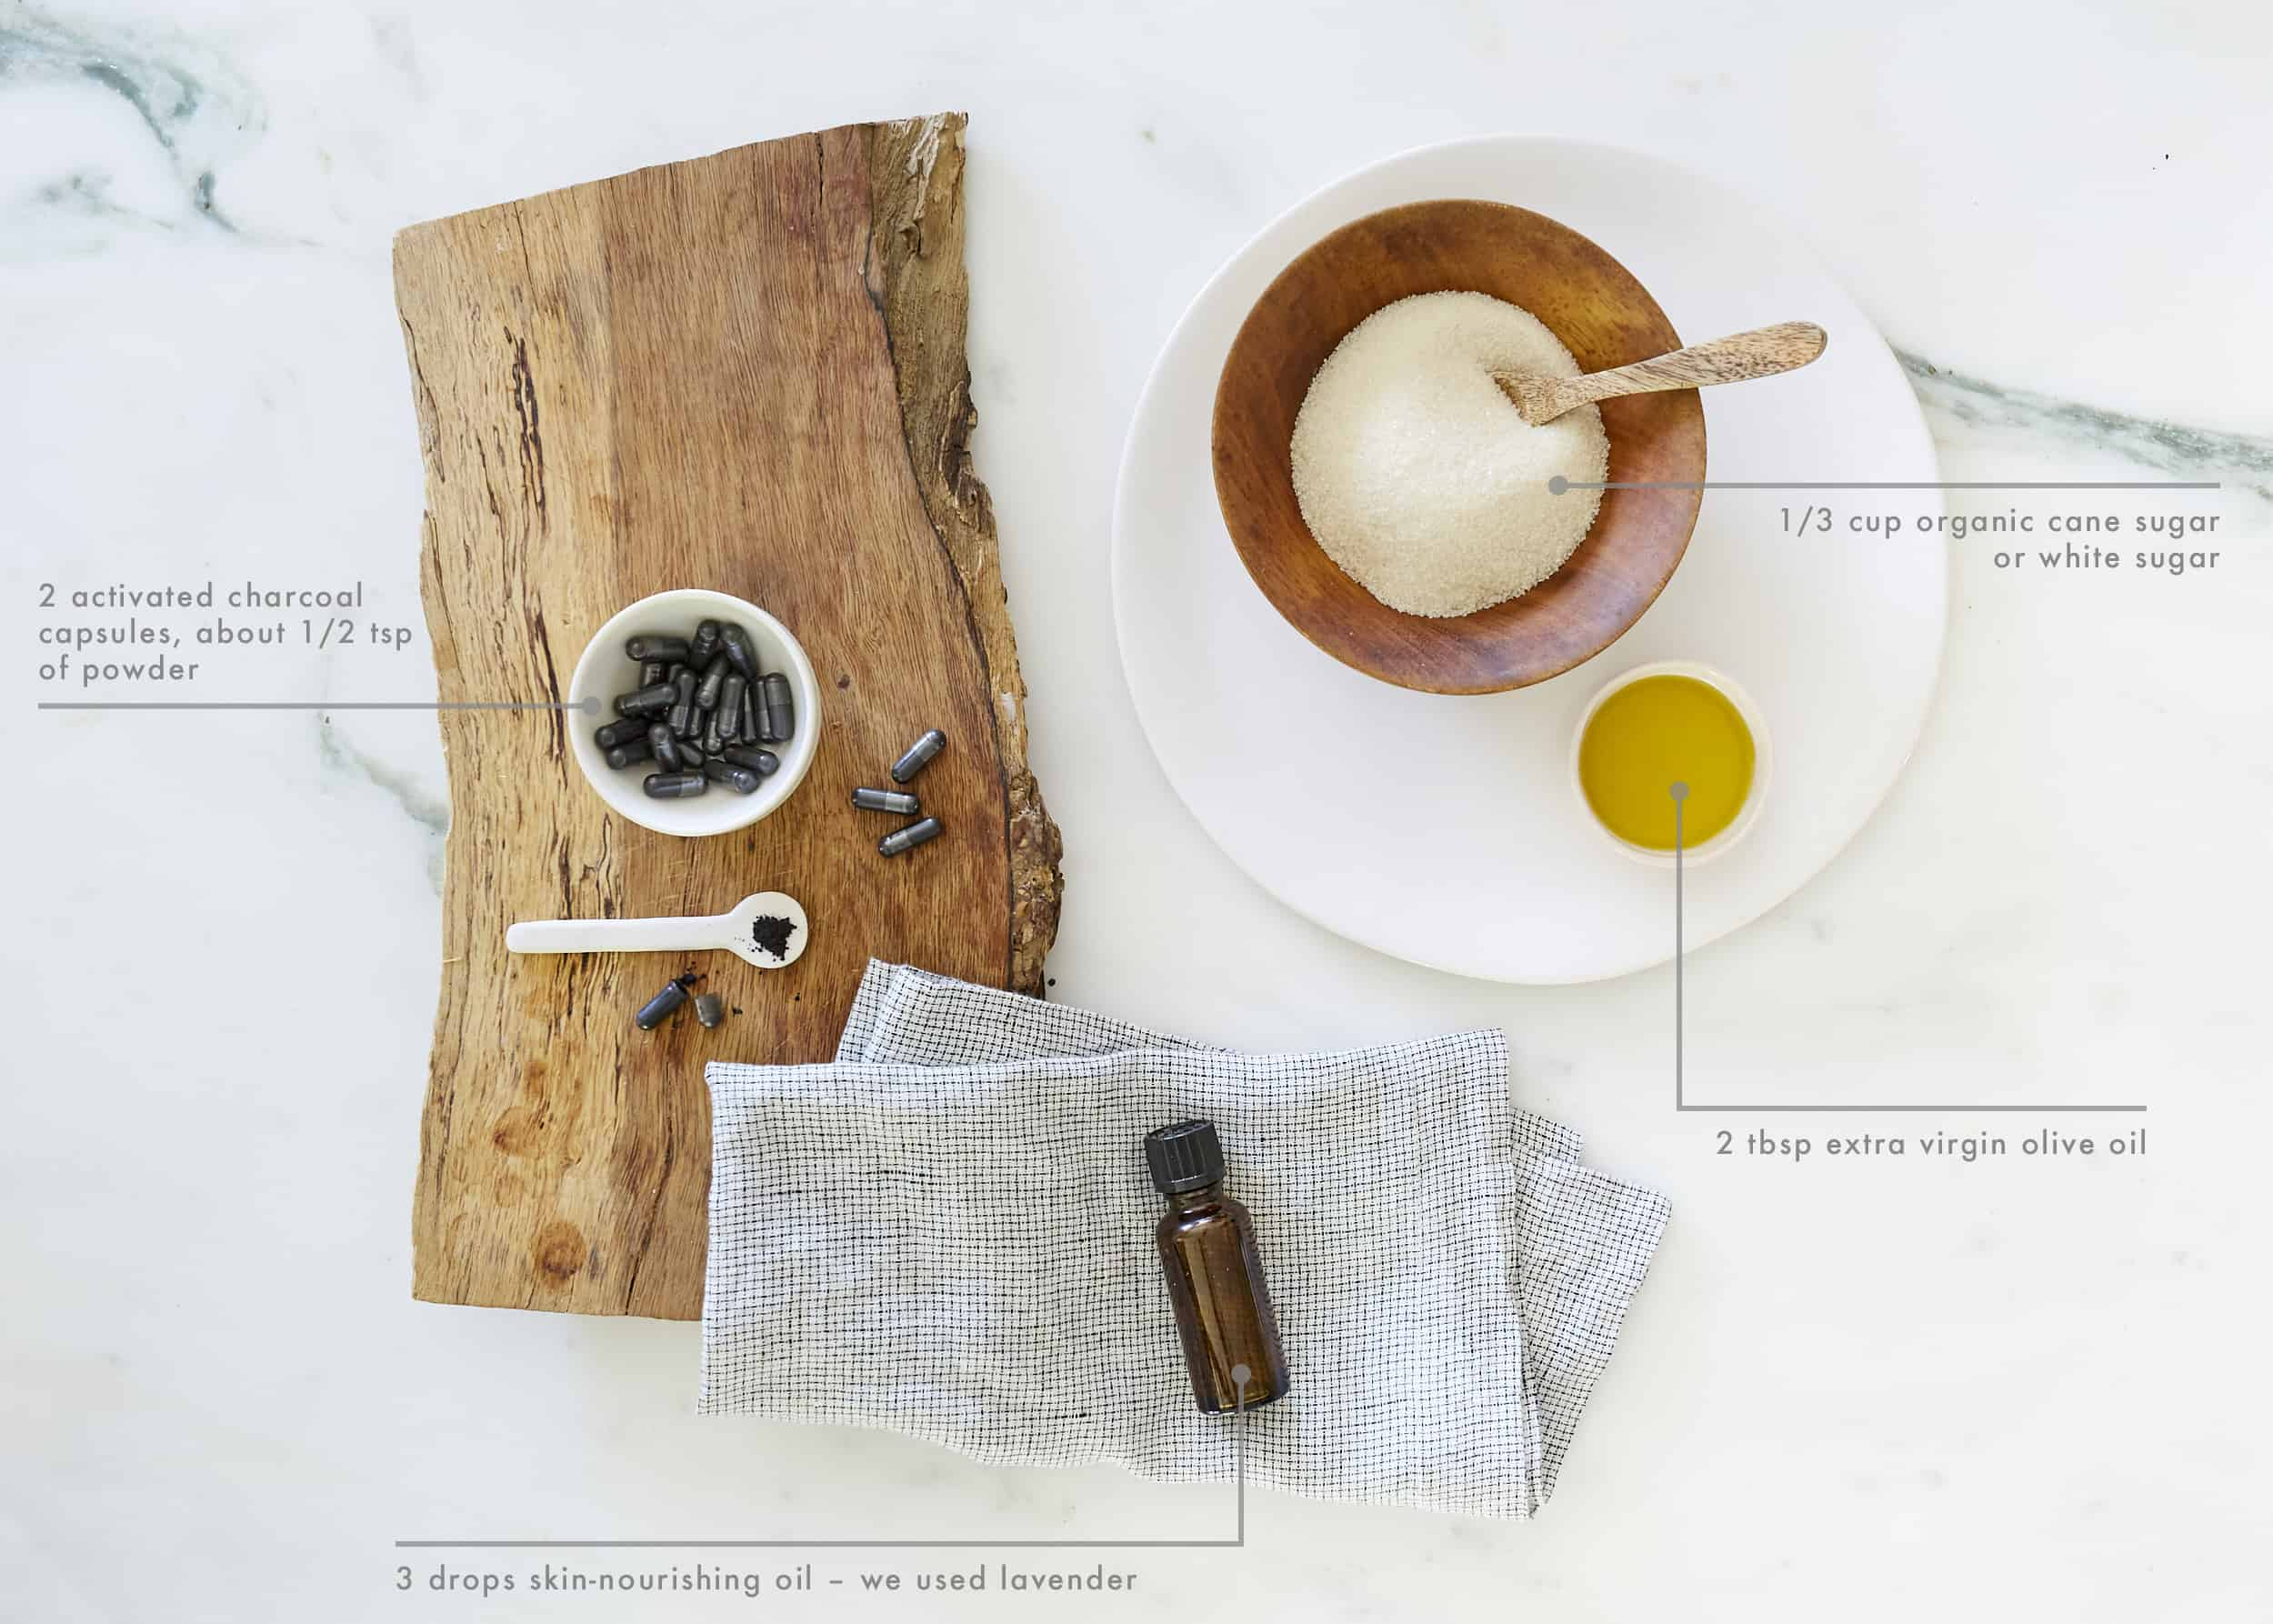 DIY Charcoal Face Mask Ingredients